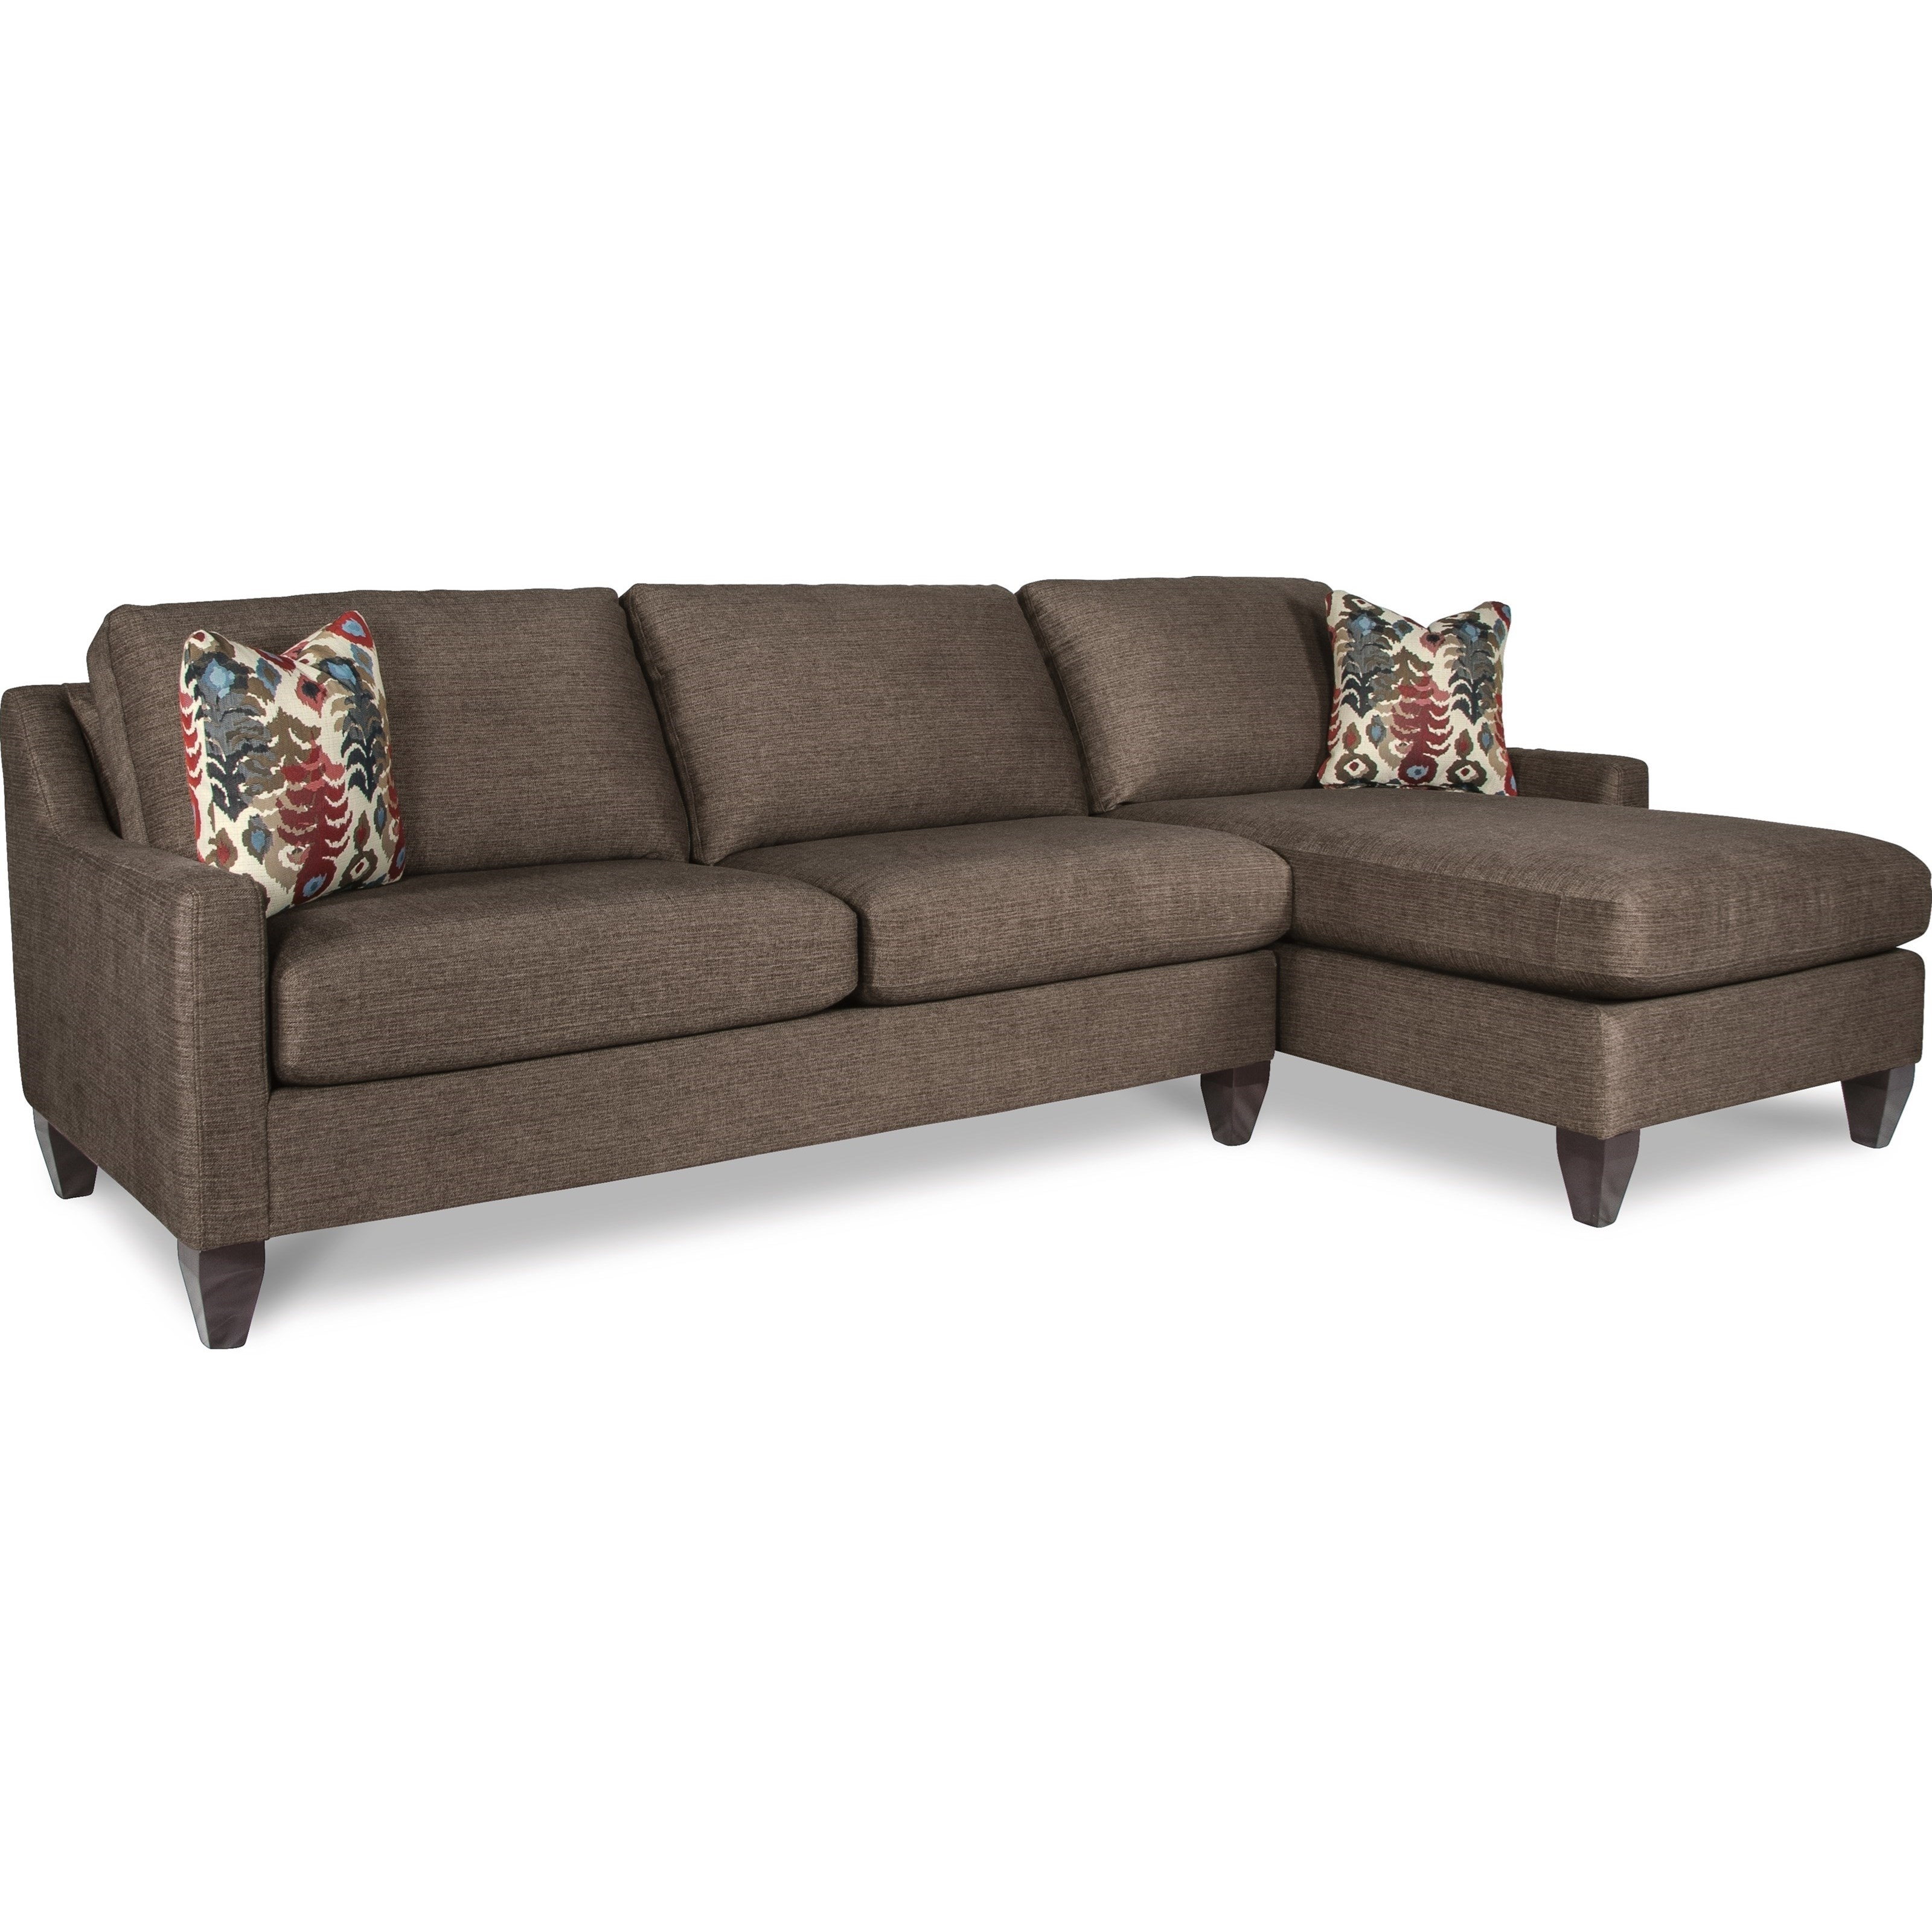 Raf Chaise Laf Sofa | Baci Living Room Regarding Mcdade Graphite 2 Piece Sectionals With Raf Chaise (Image 15 of 25)